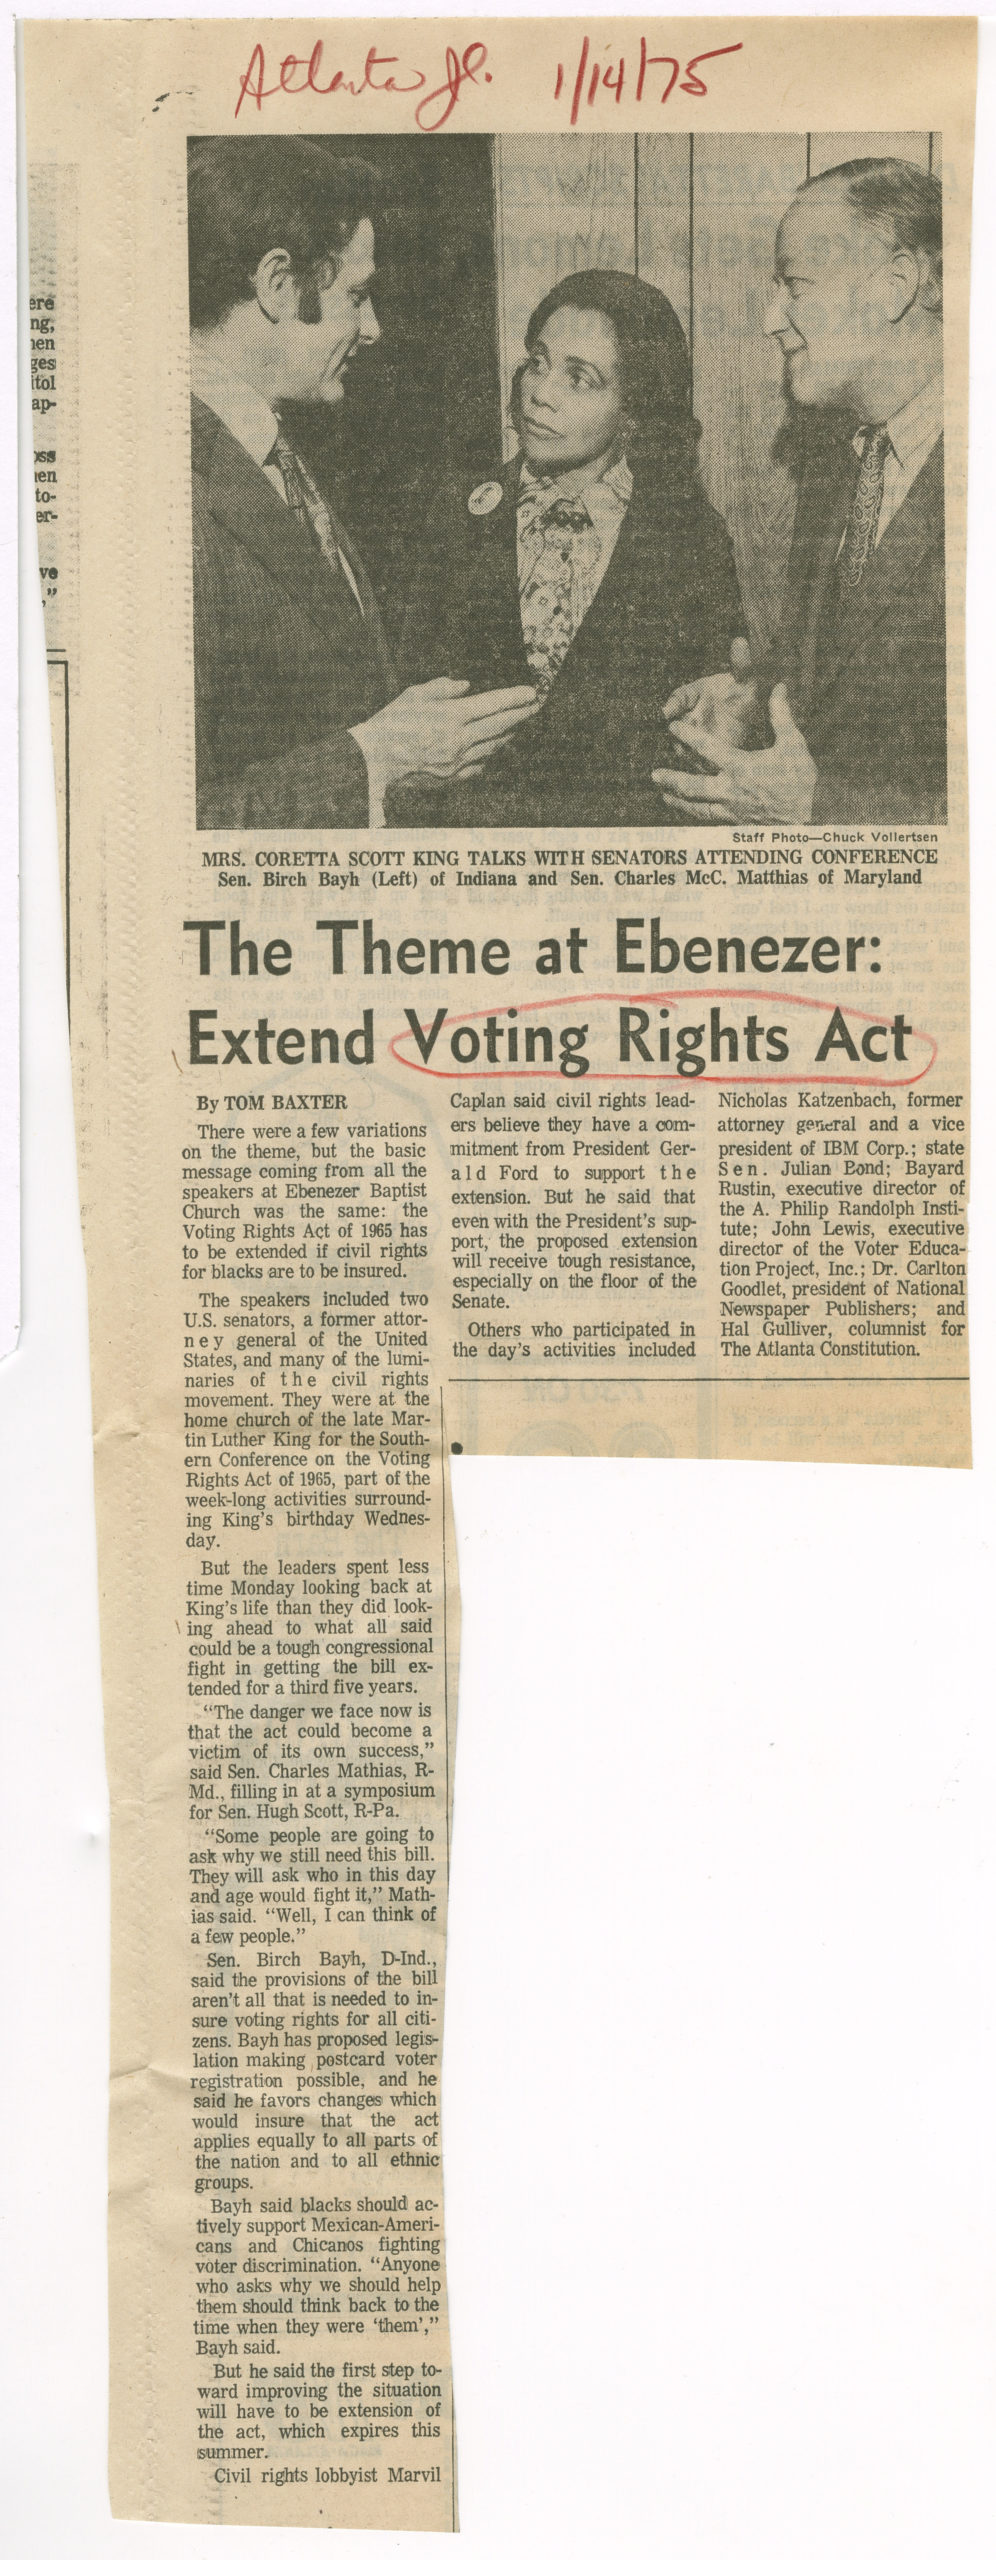 The Theme at Ebenezer: Extend Voting Rights Act, The Atlanta Journal1975 January 14Johnson Publishing Company Clippings File Collection